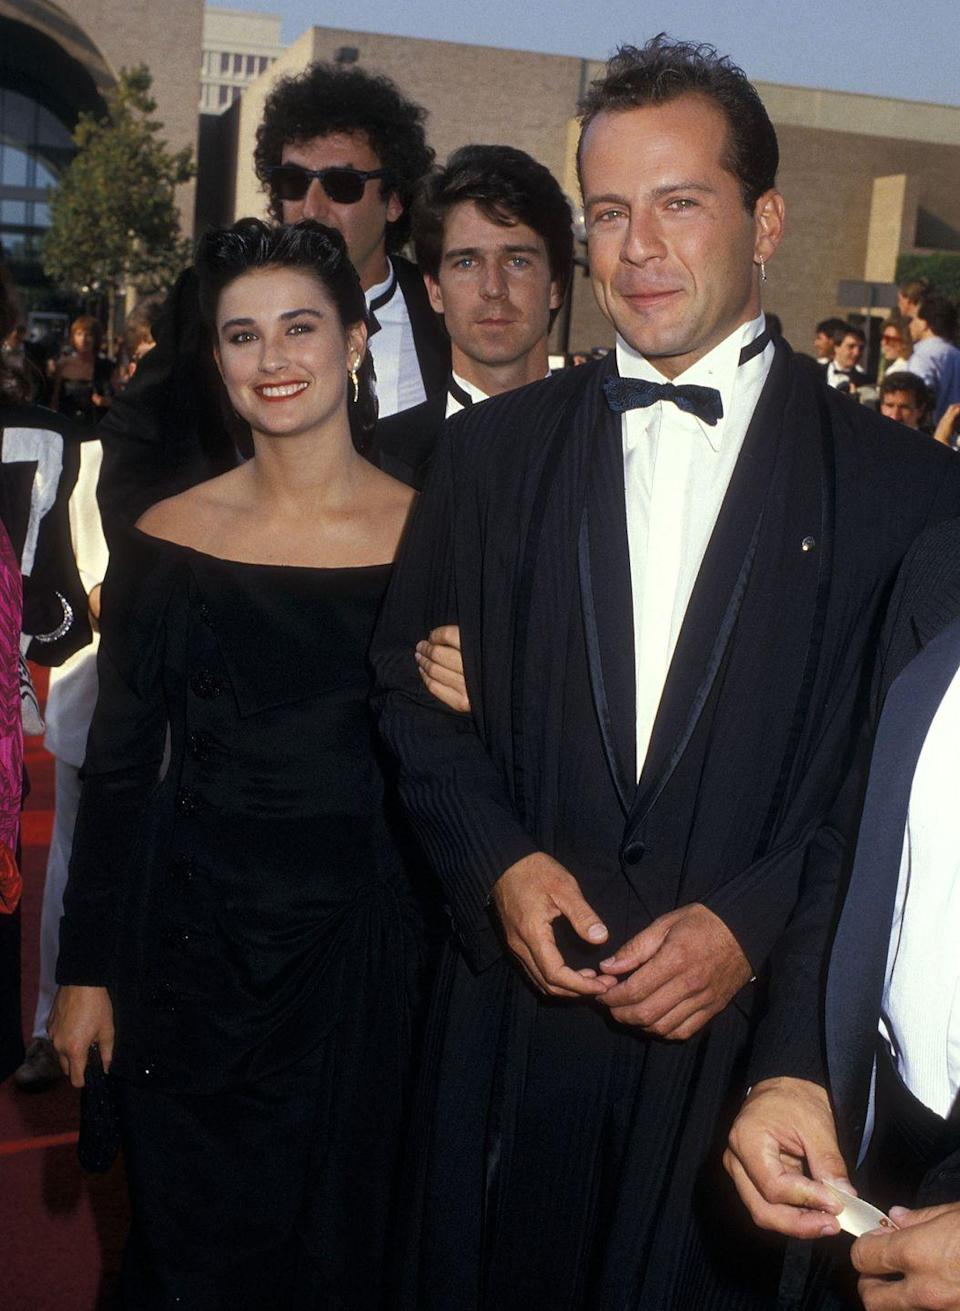 """<p> After just three months of dating, Demi Moore and Bruce Willis called a <a href=""""https://ew.com/article/1997/11/21/bruce-and-demi-celebrate-10-years/"""" rel=""""nofollow noopener"""" target=""""_blank"""" data-ylk=""""slk:reverend from Las Vegas's Little White Chapel"""" class=""""link rapid-noclick-resp"""">reverend from Las Vegas's Little White Chapel</a> and said """"I do"""" in a suite at the Golden Nugget hotel. The couple had three daughters together, but split in 2000. </p>"""